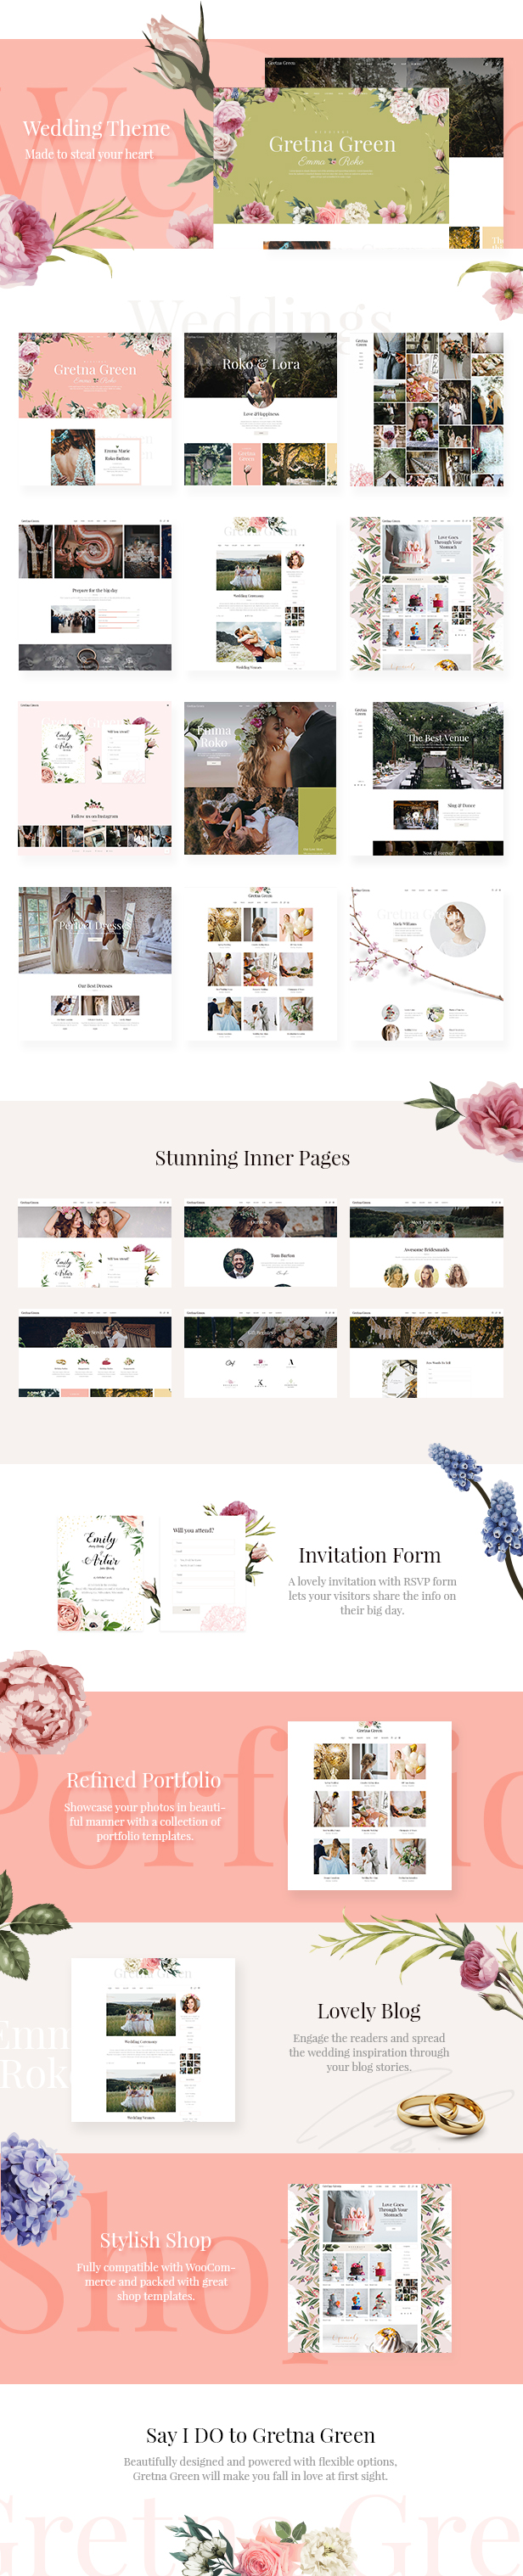 WordPress theme Gretna Green - A Stylish Theme for Weddings, Event Planners and Celebrations (Wedding)